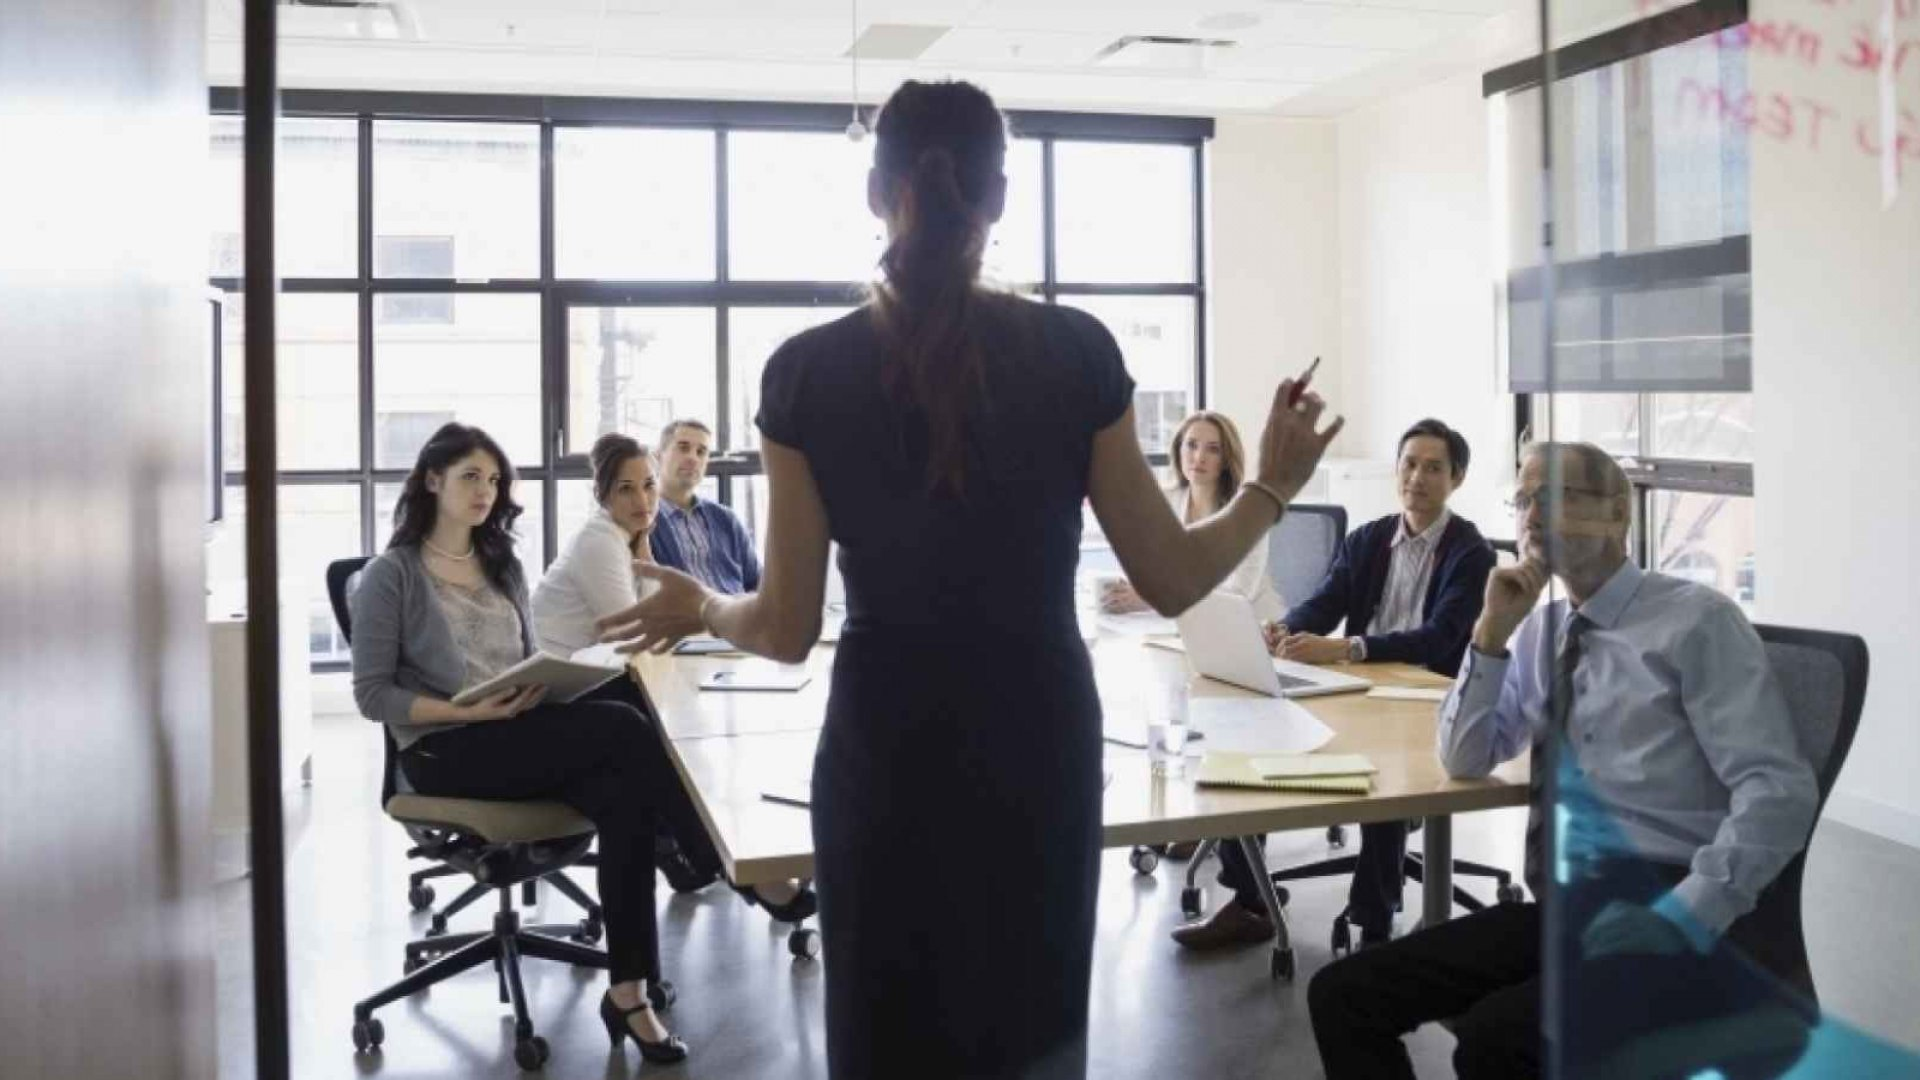 5 Lessons My Clients Taught Me About Leadership